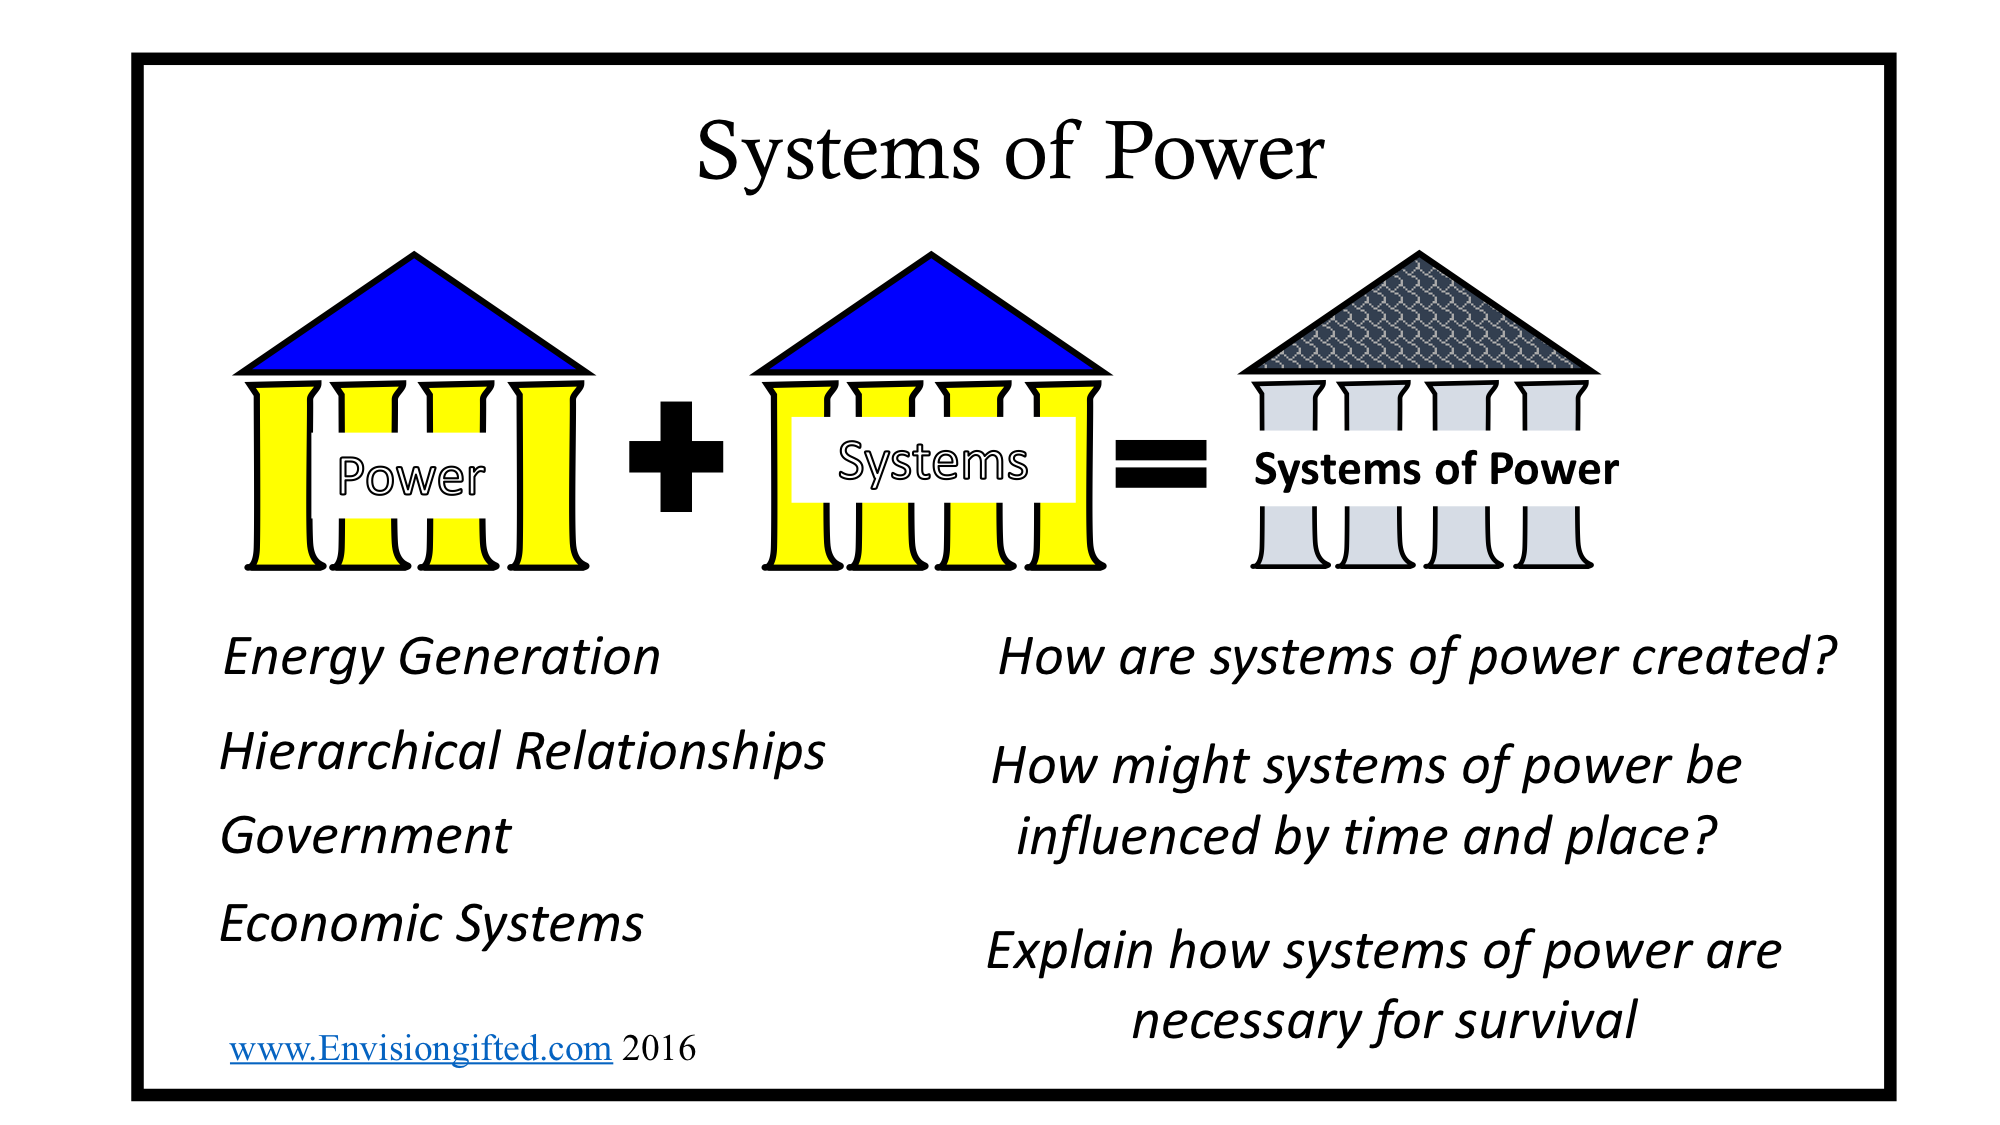 Envision Gifted. Systems-of-power